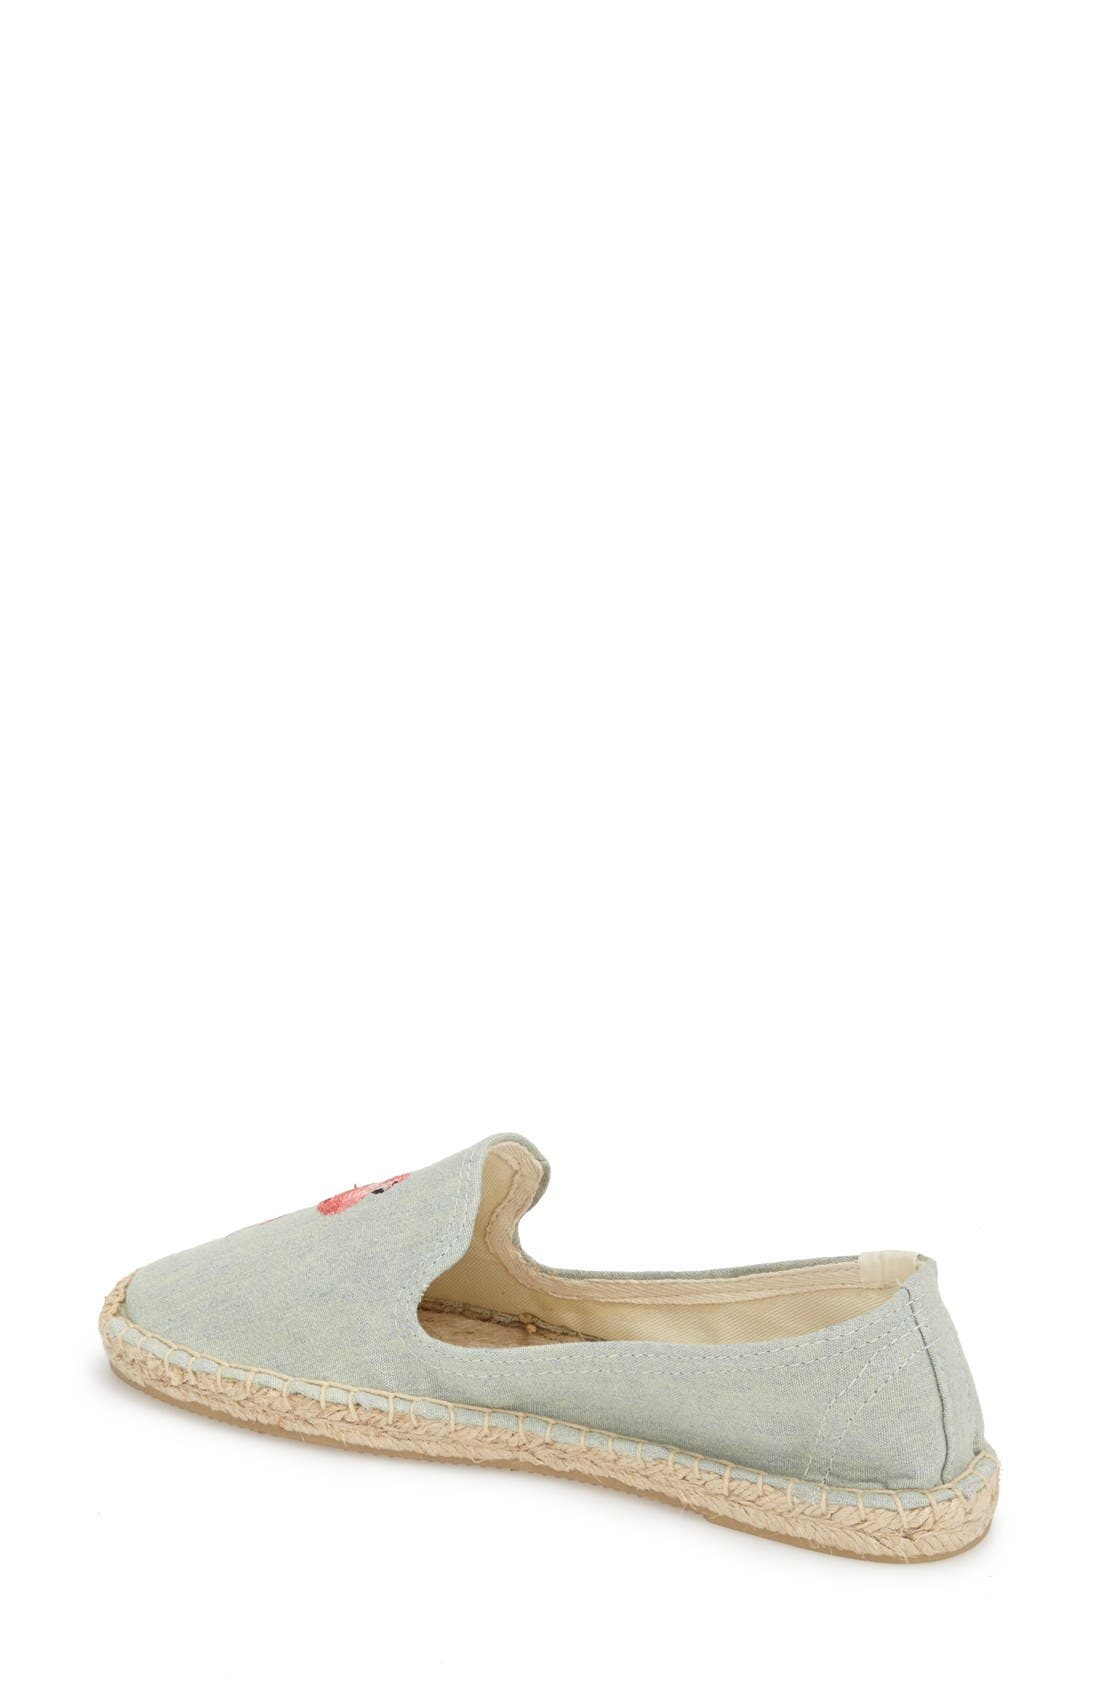 SOLUDOS, Espadrille Slip-On, Alternate thumbnail 2, color, FLAMINGO CHAMBRAY